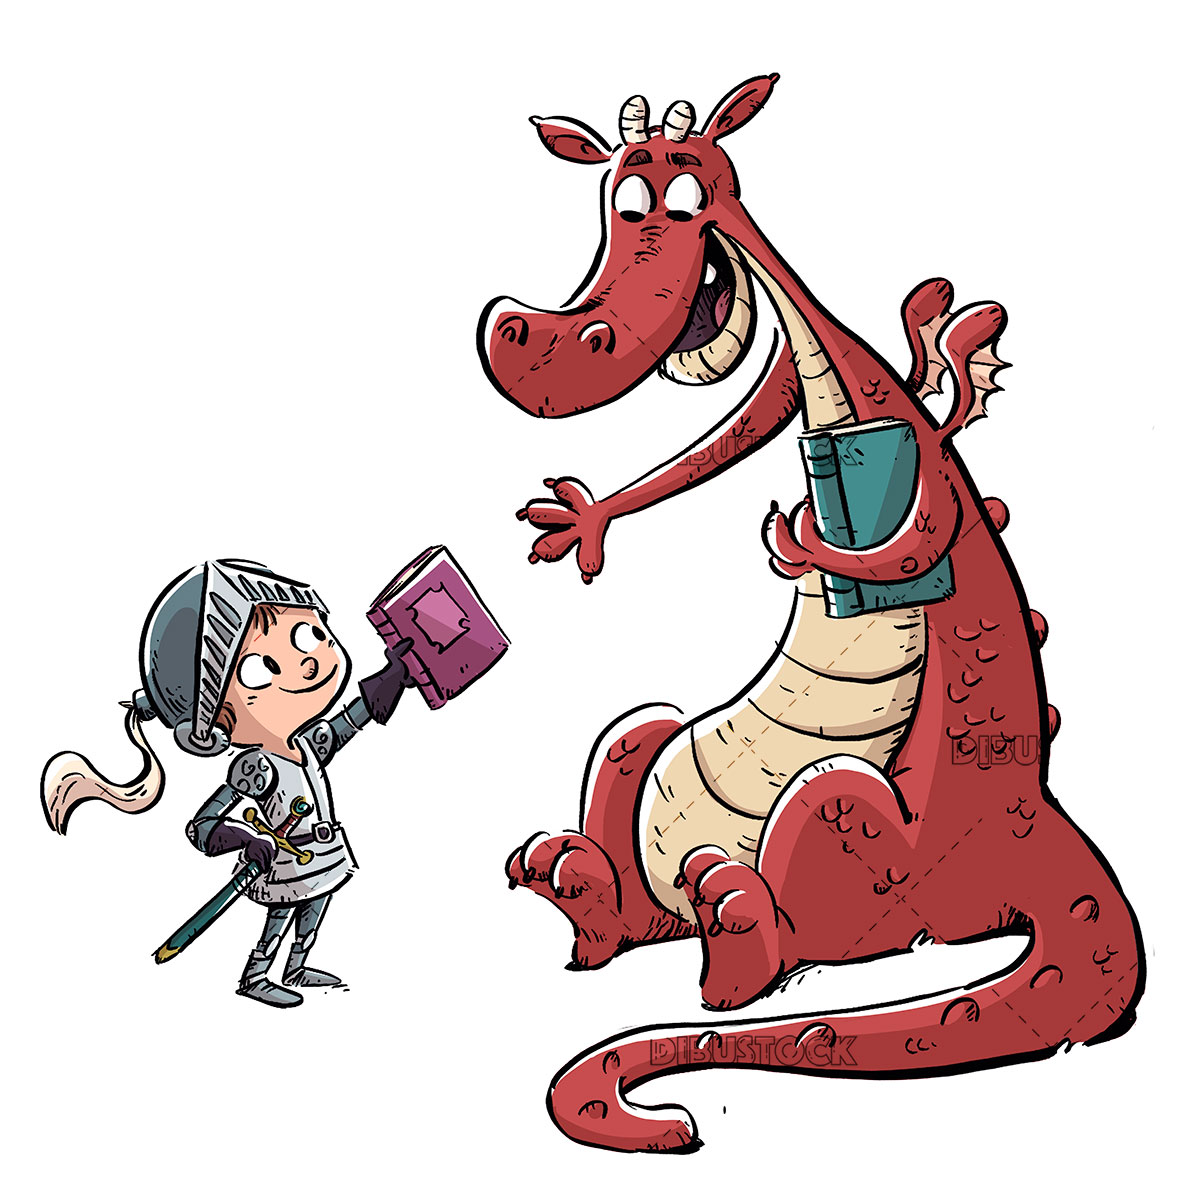 Knight handing a book to a dragon